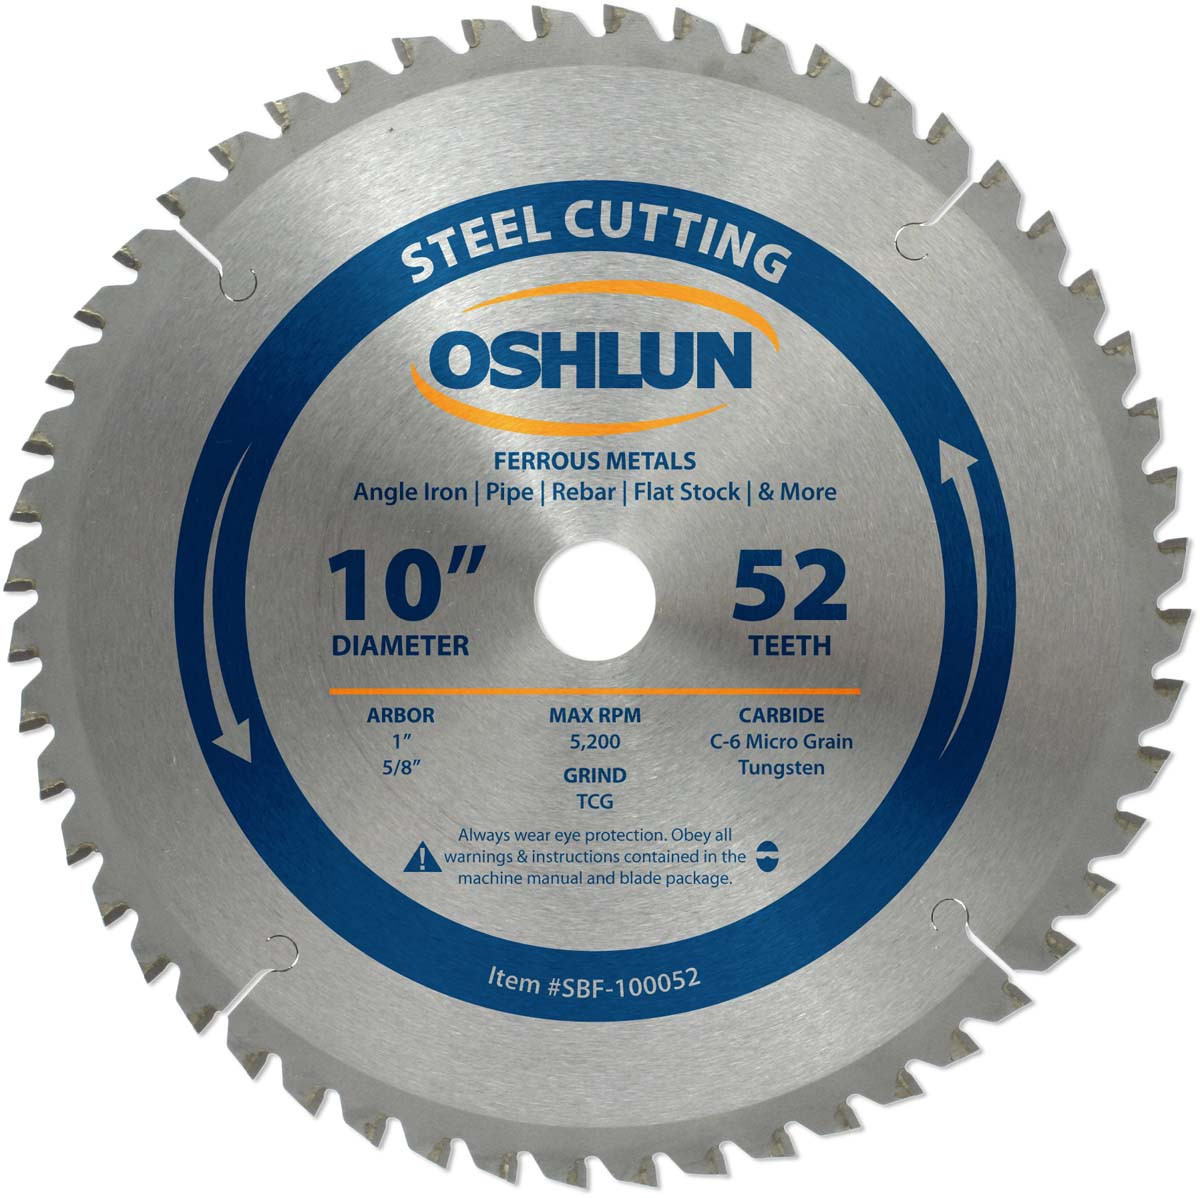 Steel cutting circular saw ferrous metal saw blades greentooth Choice Image